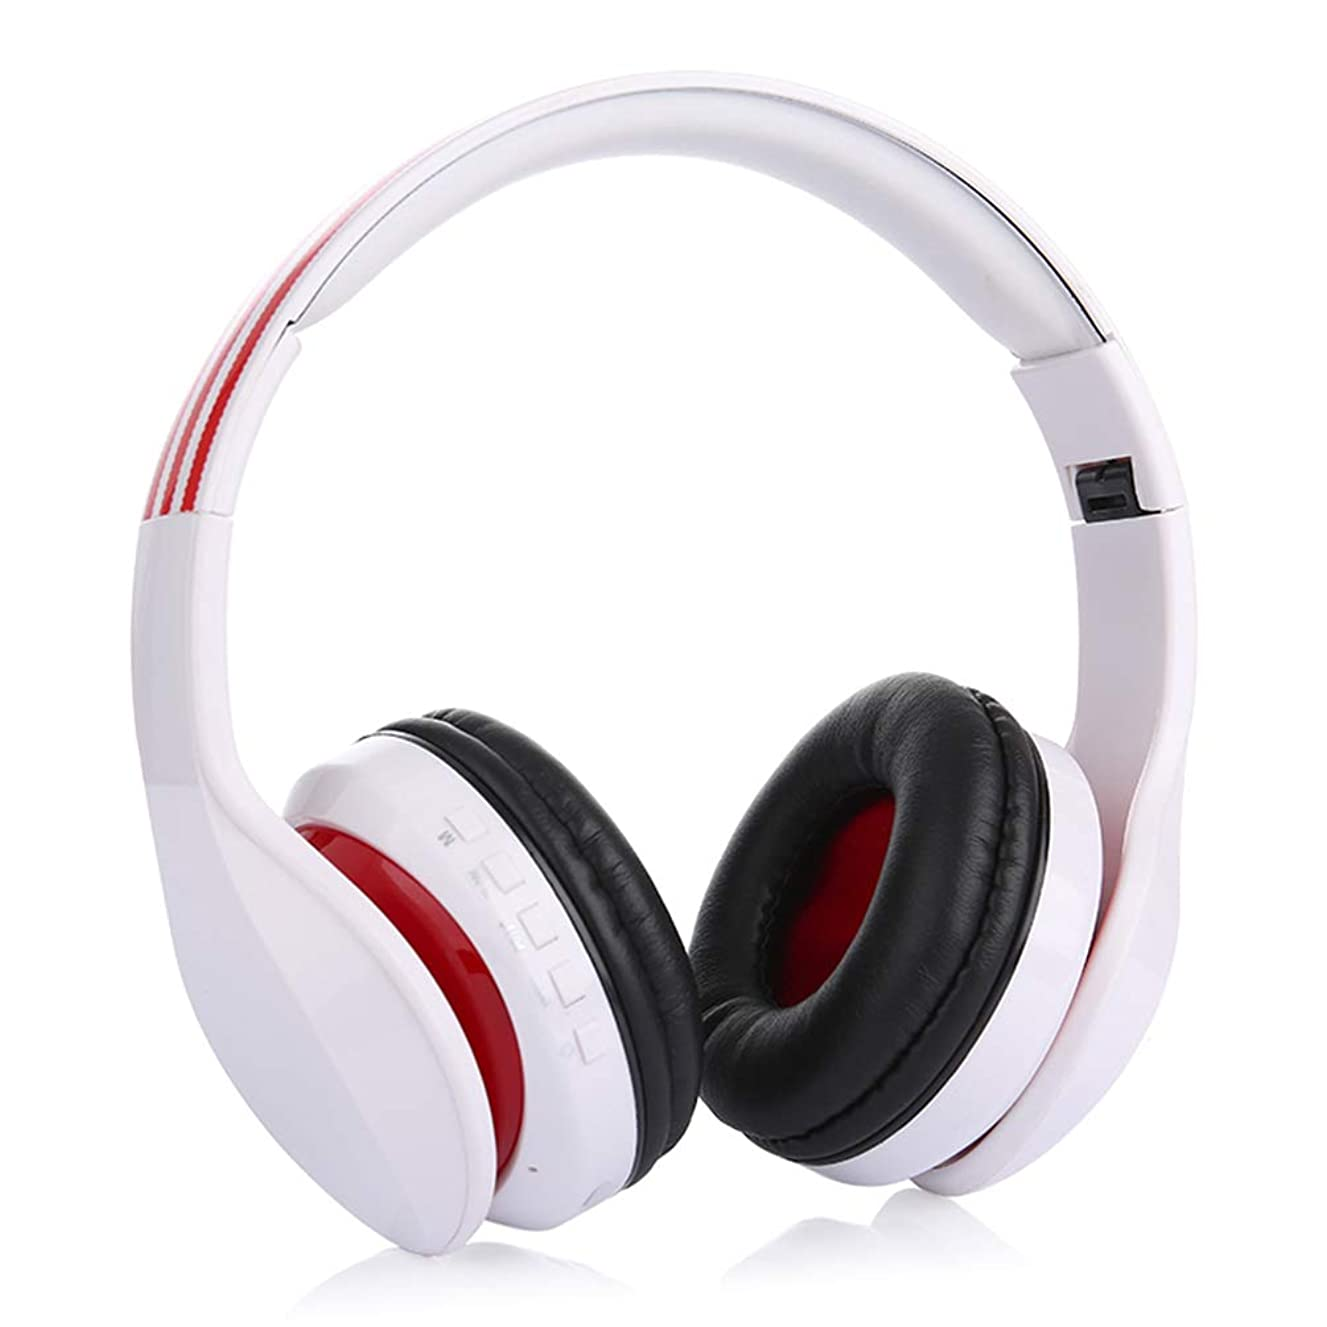 Wireless Bluetooth Over Ear Foldable Headphones Protein Leather Cushions Noise Cancelling Volume Control for Pc Phones Tv Tablet